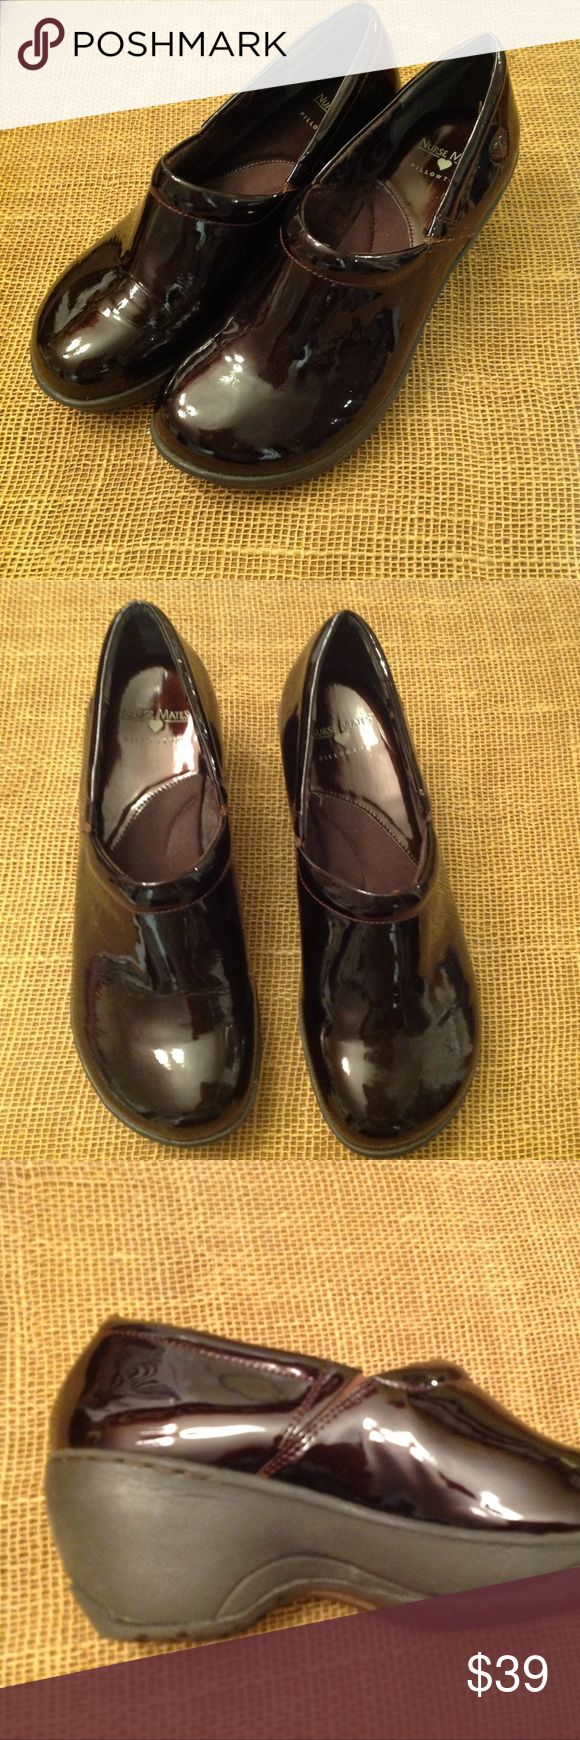 "Bryar Pillow Top Slip On's Nurse Mates, very lightweight and very comfortable clogs. Dark burgundy patent leather, with 2.5"" heel. New condition. Nurse Mates Shoes Mules & Clogs"